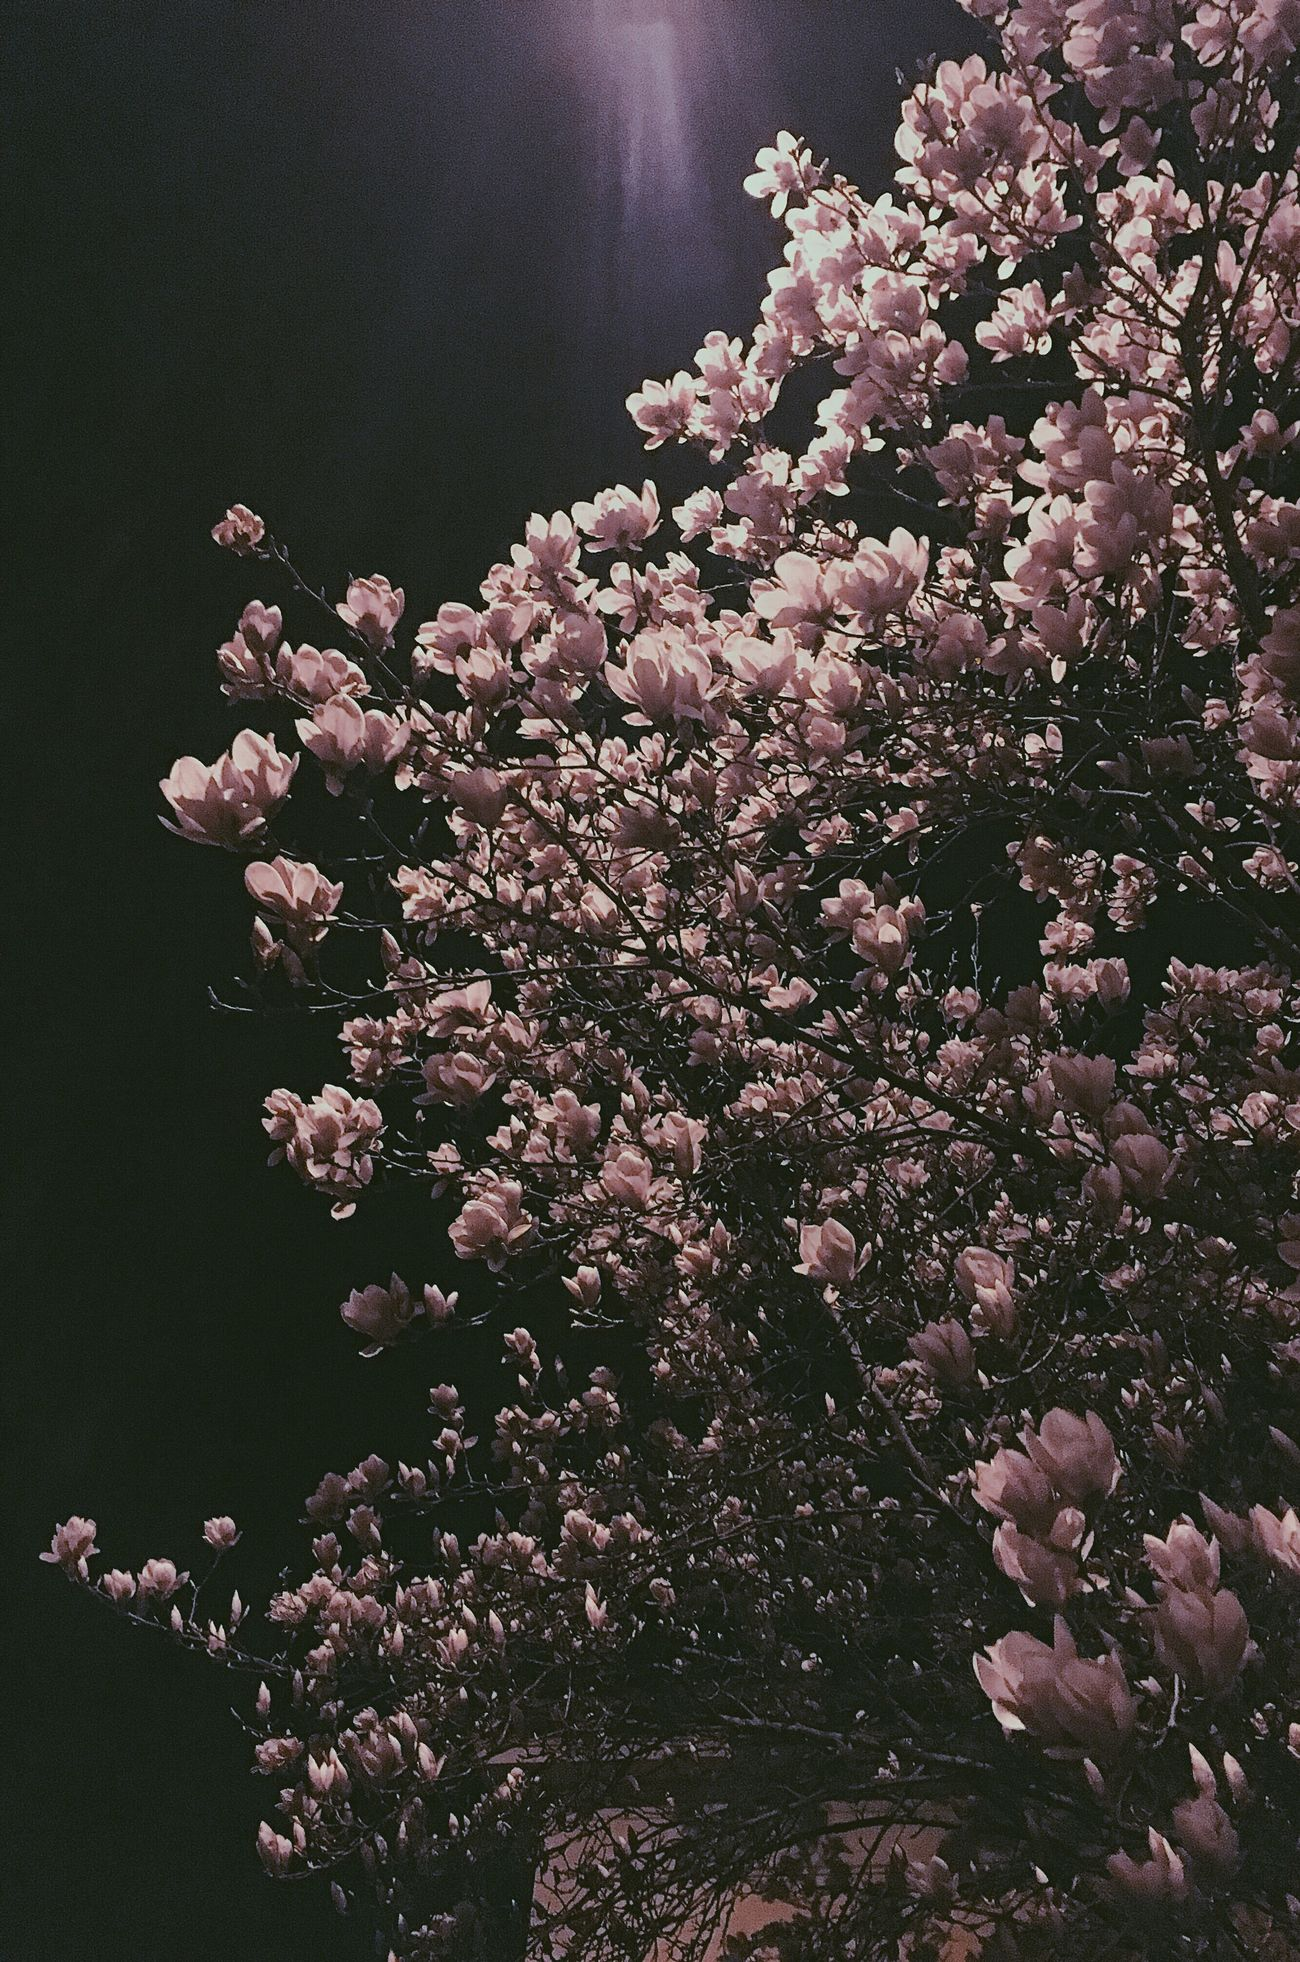 Flower Nature Blossom Tree Petal Springtime Night Outdoors Growth Fragility Beauty Spring Spring Flowers Millennial Pink